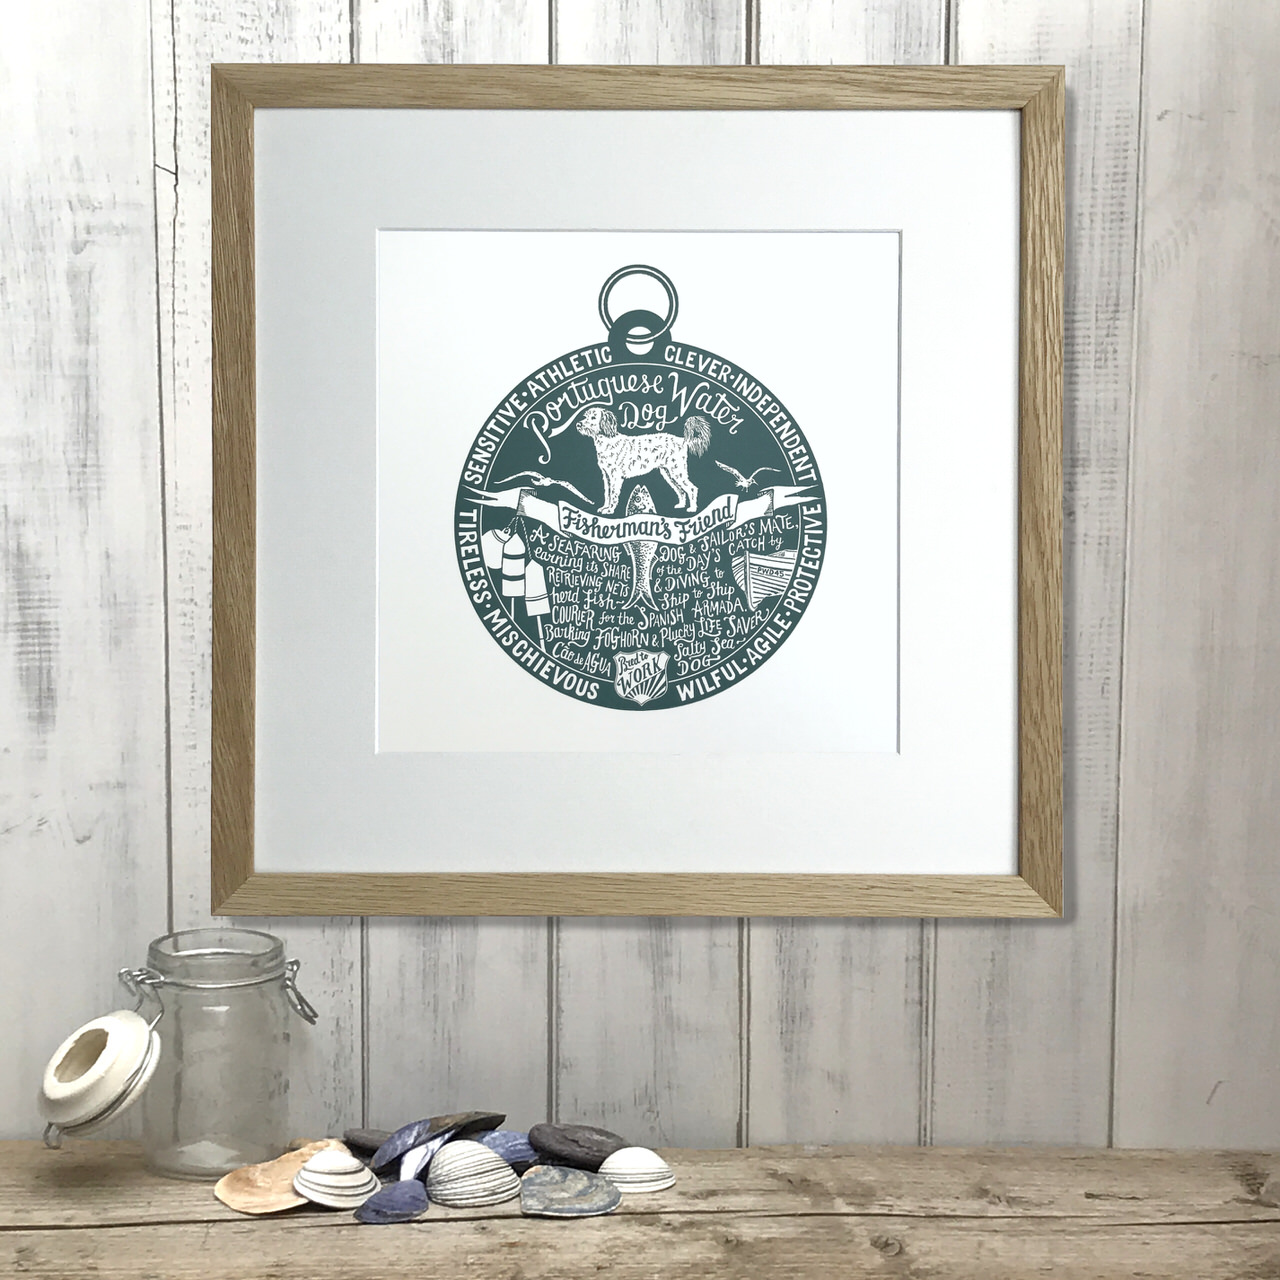 Portuguese water dog lover art gifts by The Enlightened Hound